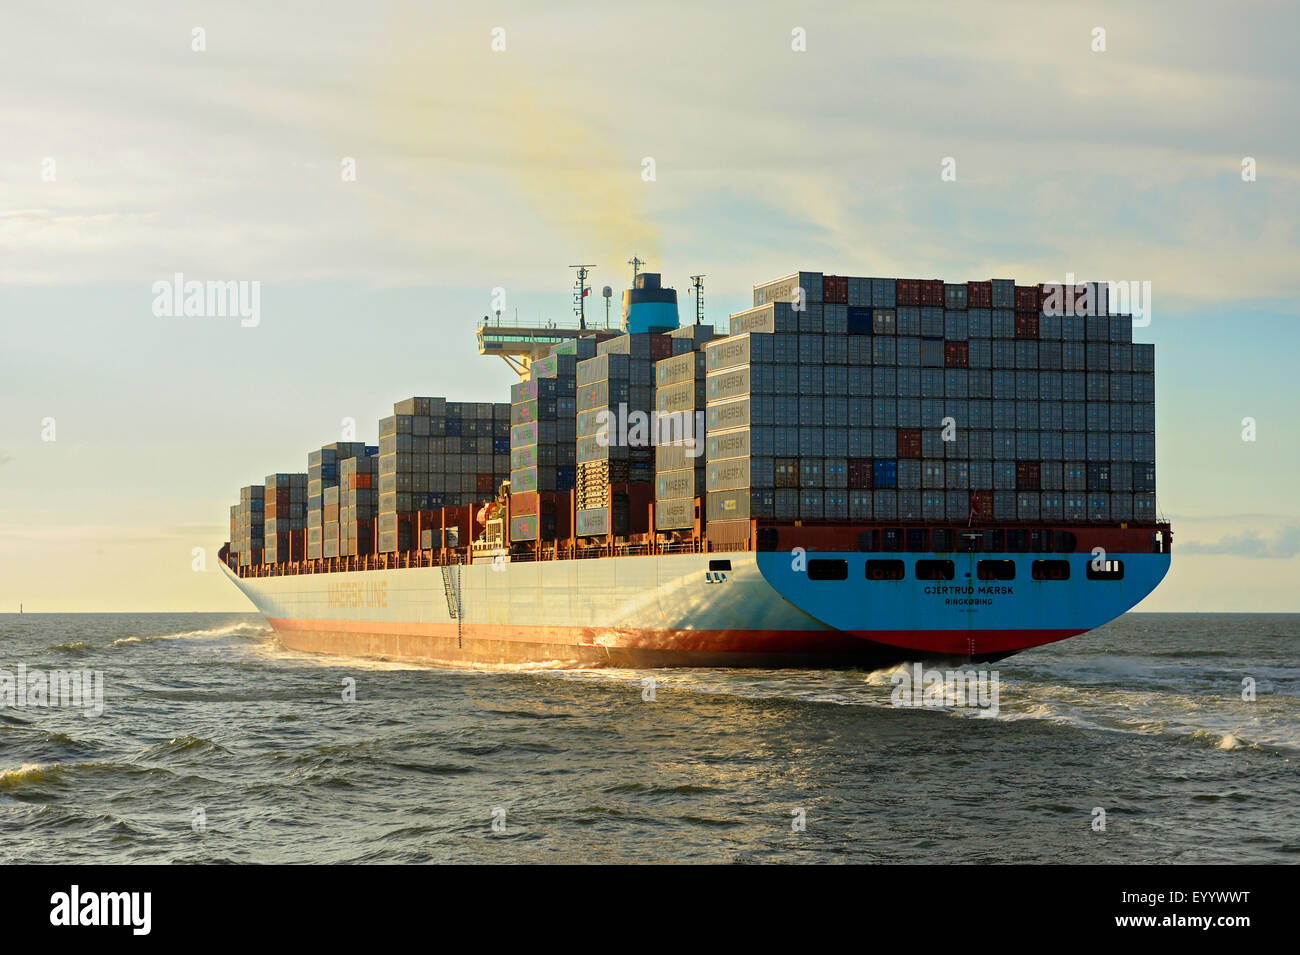 cargo ship in the Elbe estuary, Germany, Lower Saxony, Cuxhaven - Stock Image